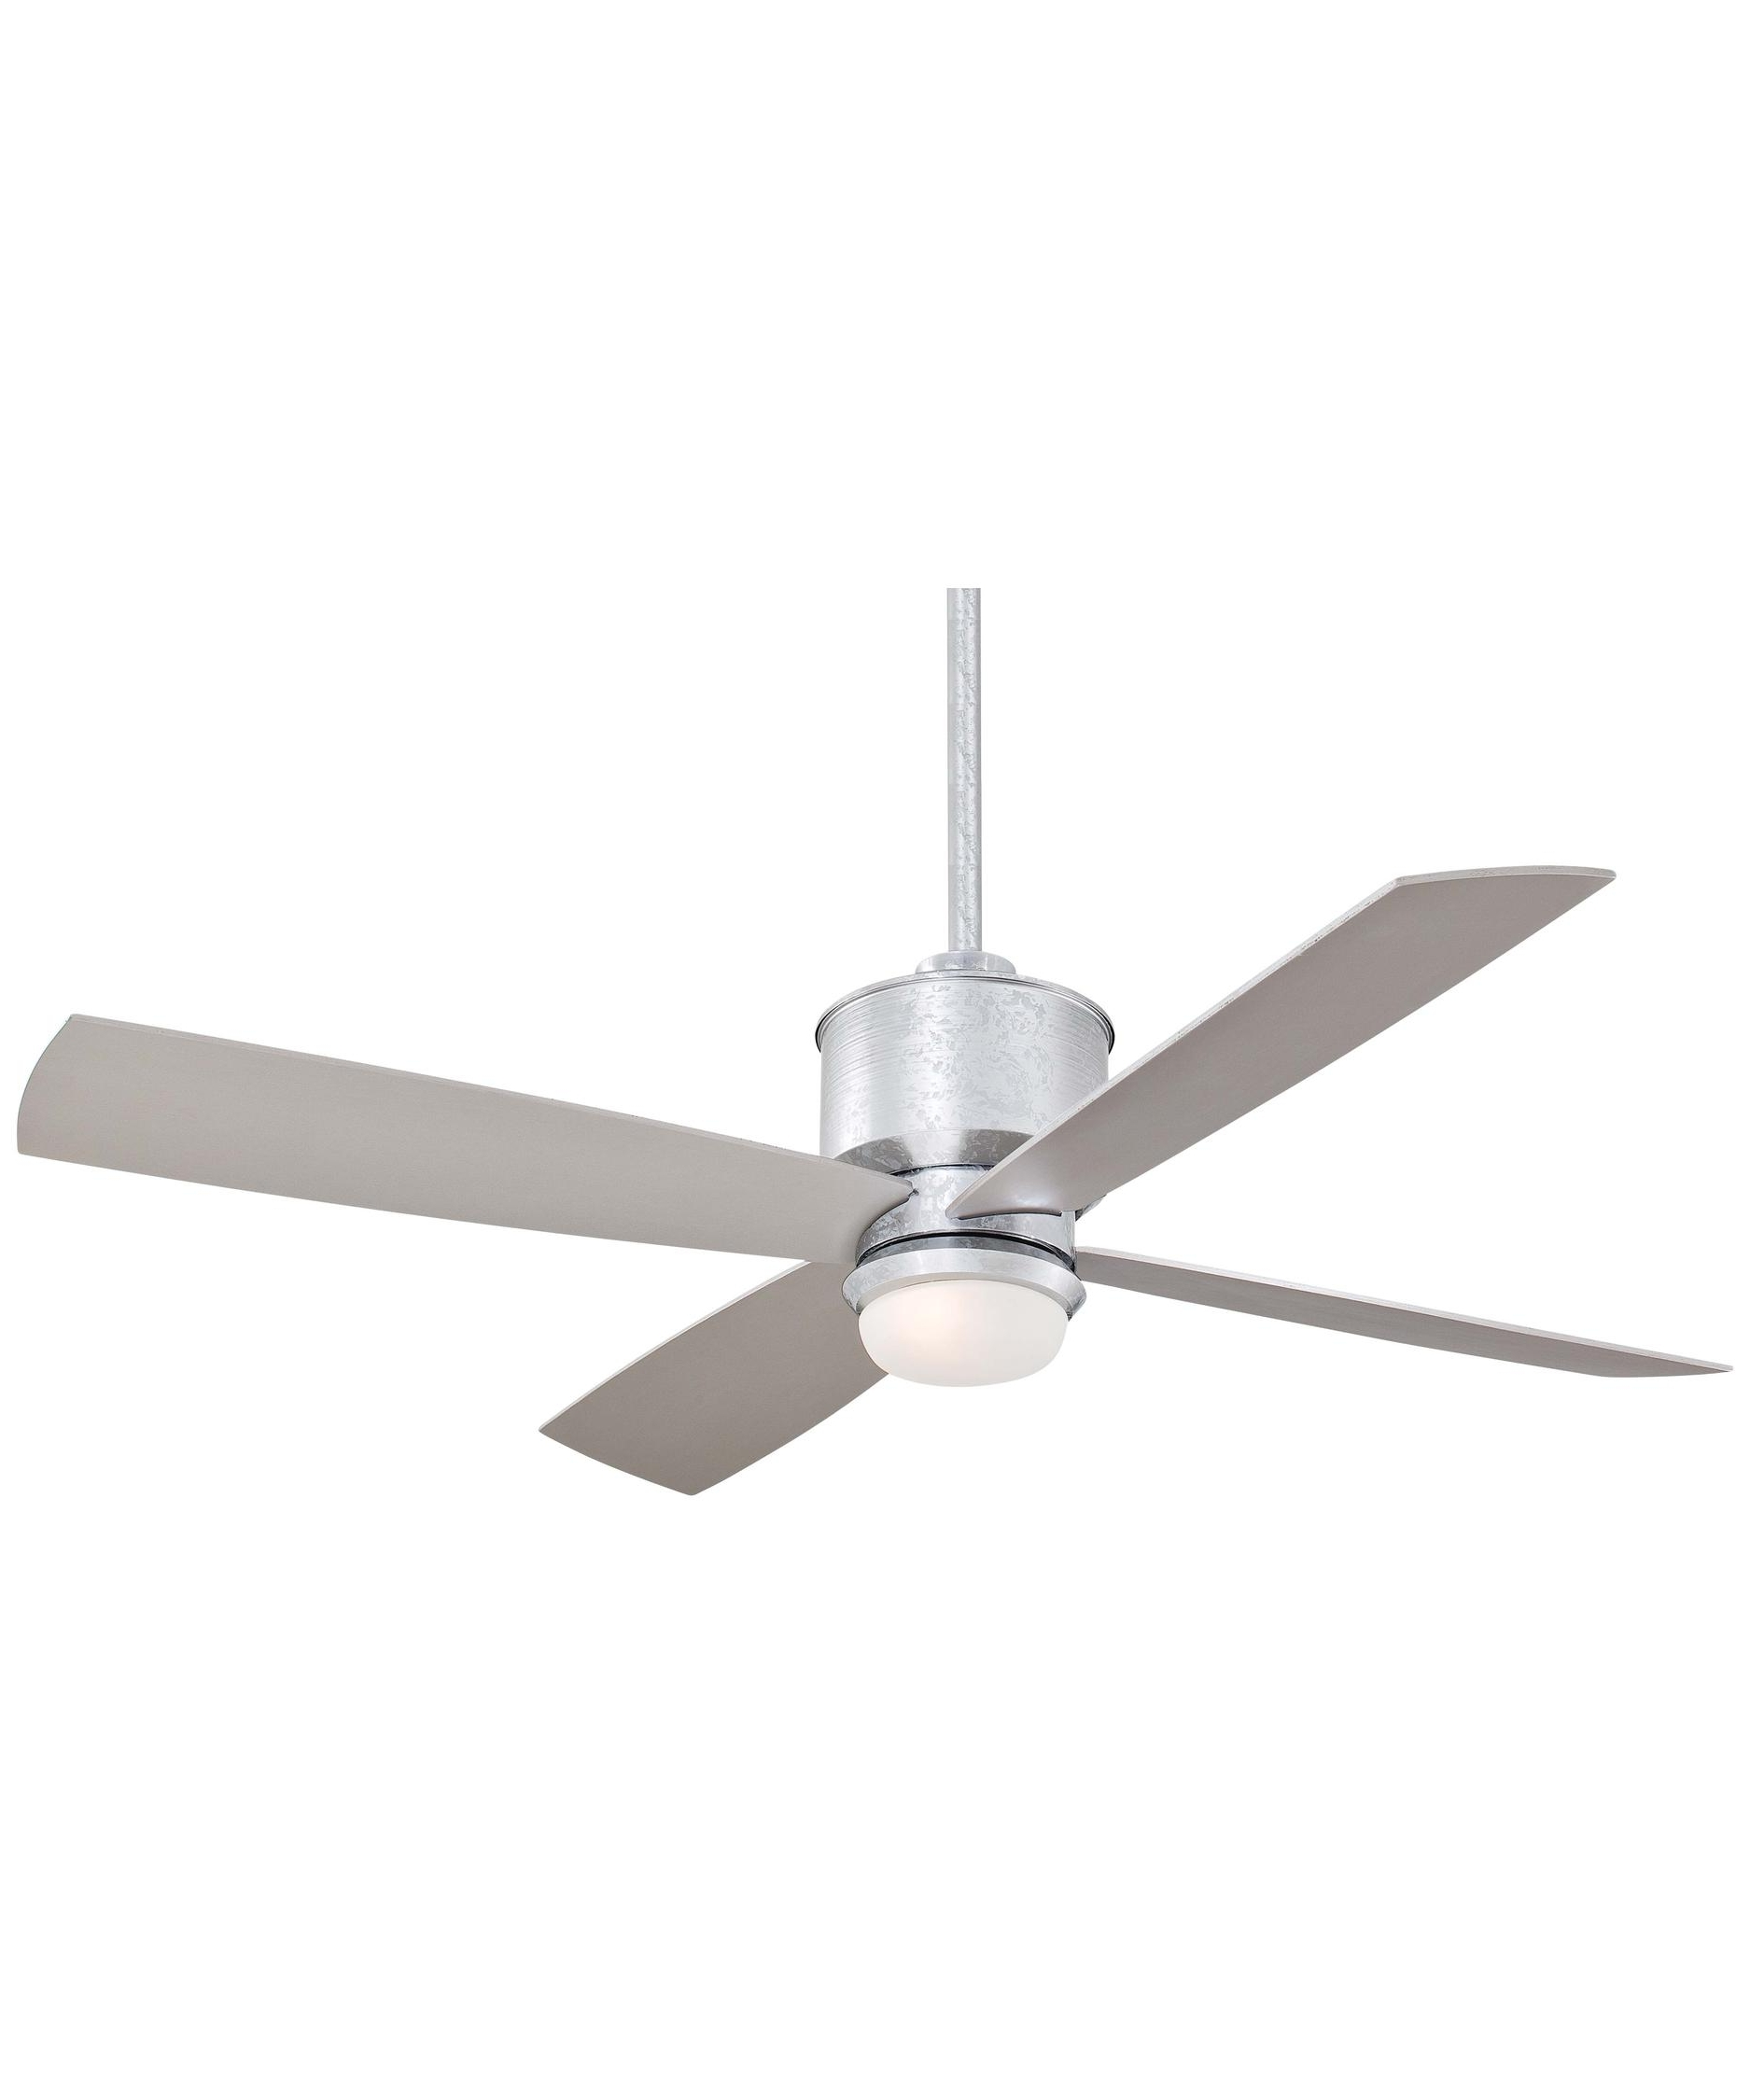 Most Recently Released Galvanized Outdoor Ceiling Fans With Light Inside Minka Aire F734 Strata 52 Inch 4 Blade Ceiling Fan (View 17 of 20)